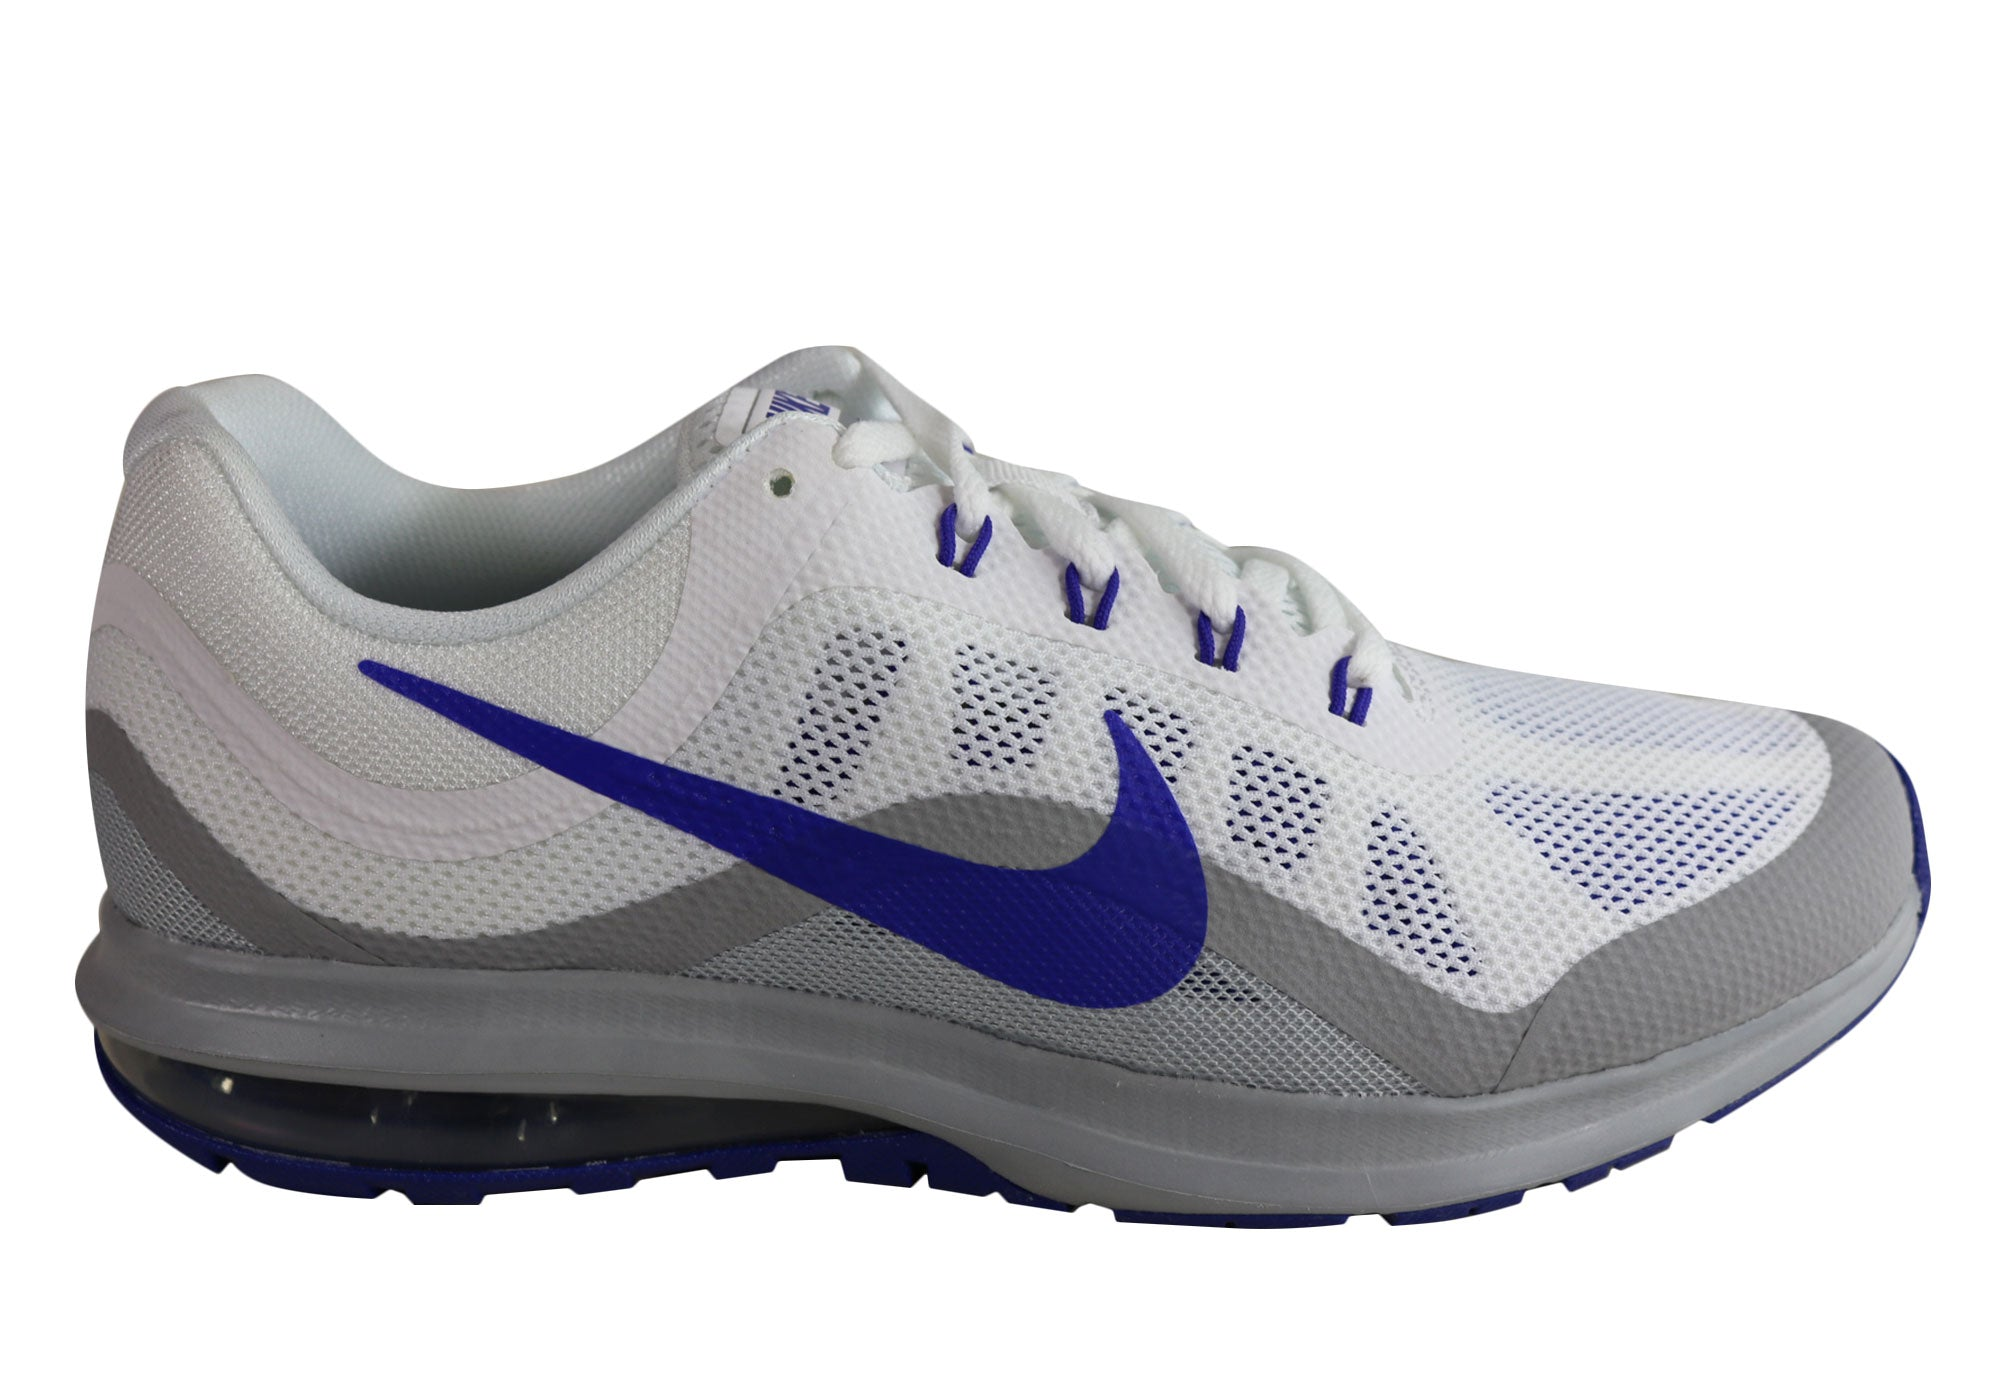 nike air max fitsole 2 reviews